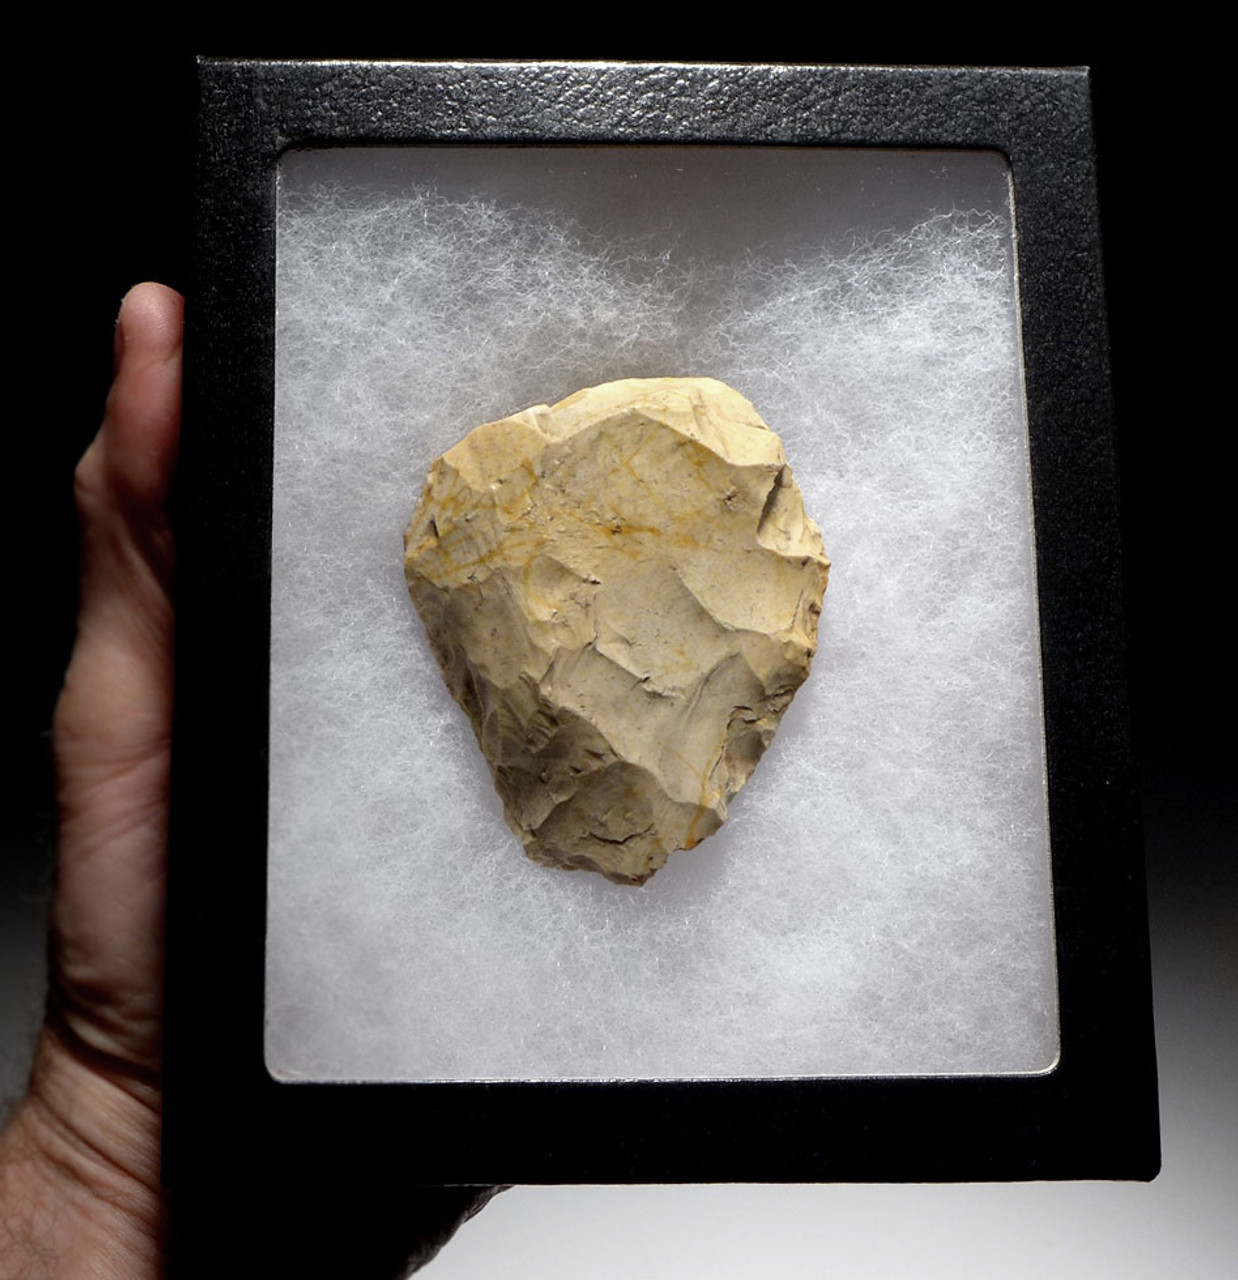 EXQUISITE NEANDERTHAL MOUSTERIAN FLINT BIFACE HAND AXE FROM NORMANDY FRANCE *M501